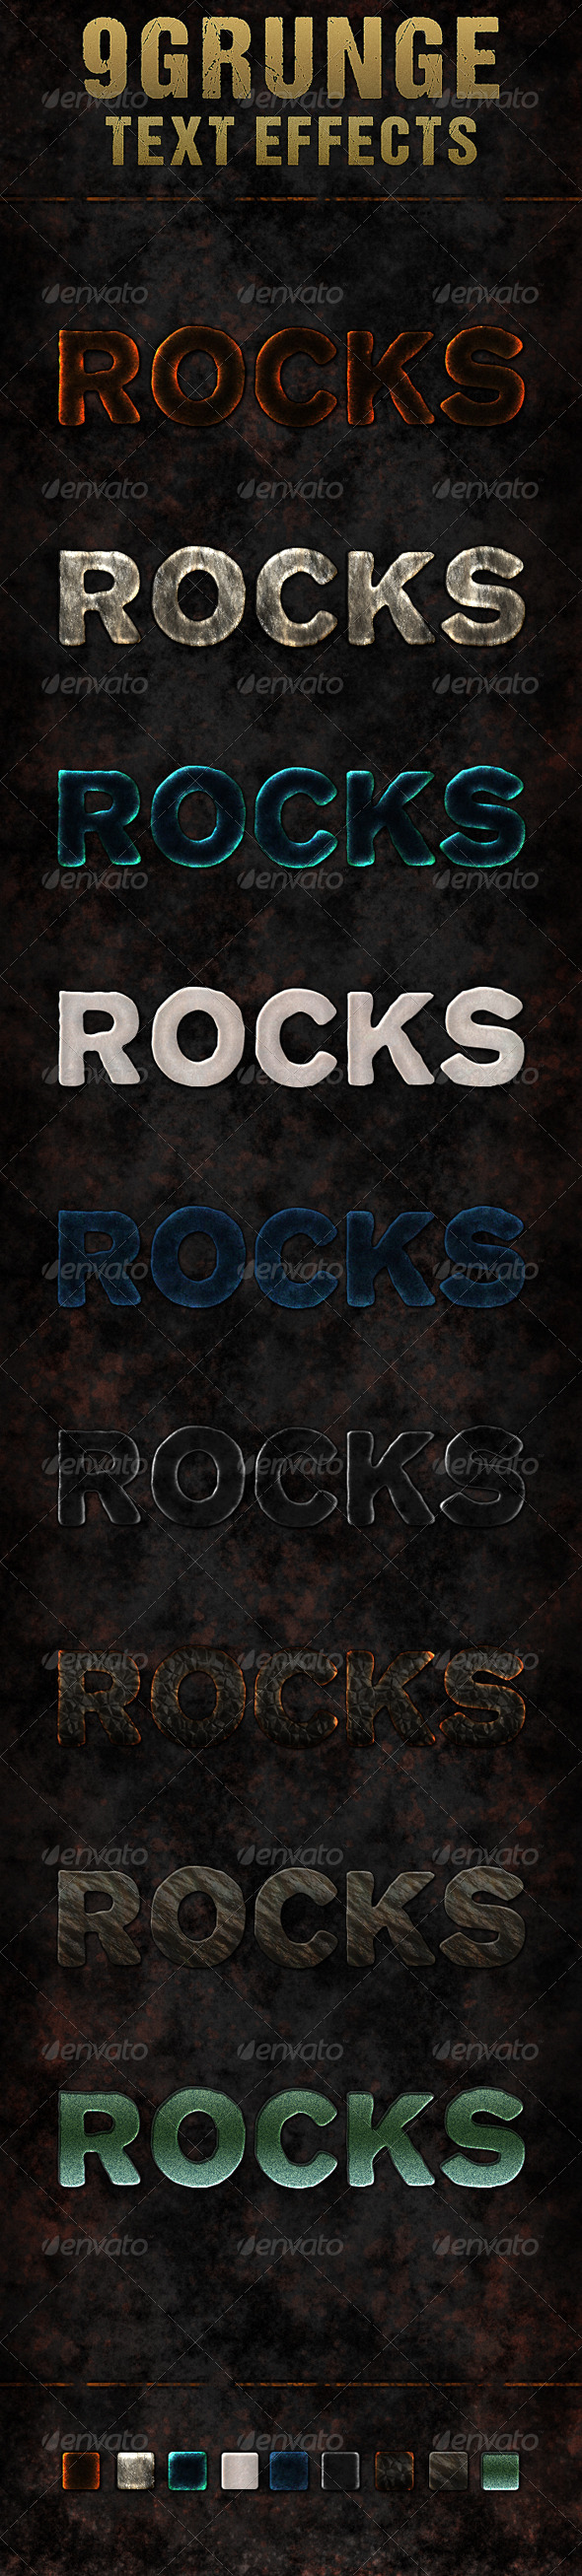 GraphicRiver Nine Grunge Rock Text Effects 5827771